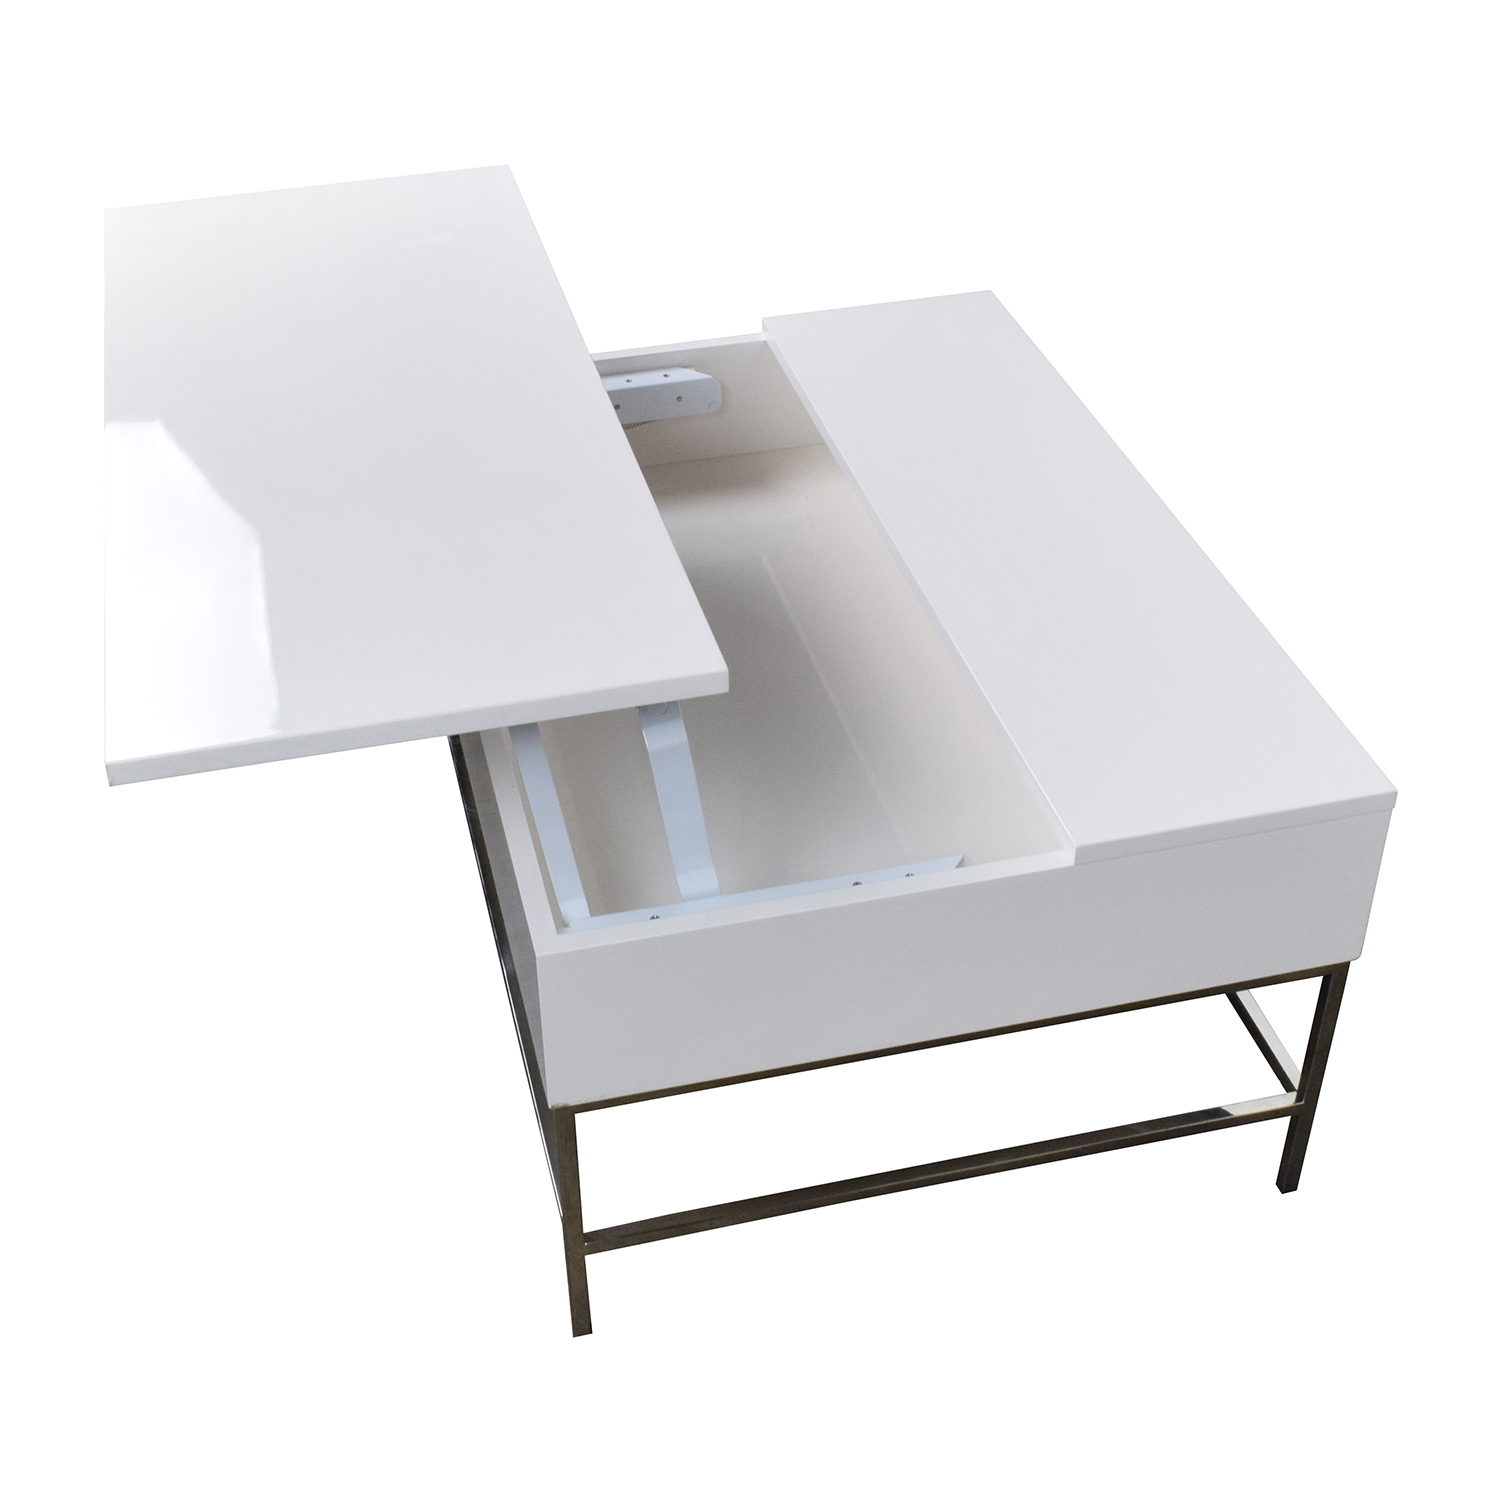 34% OFF West Elm Storage Table West Elm White Lacquer Wood